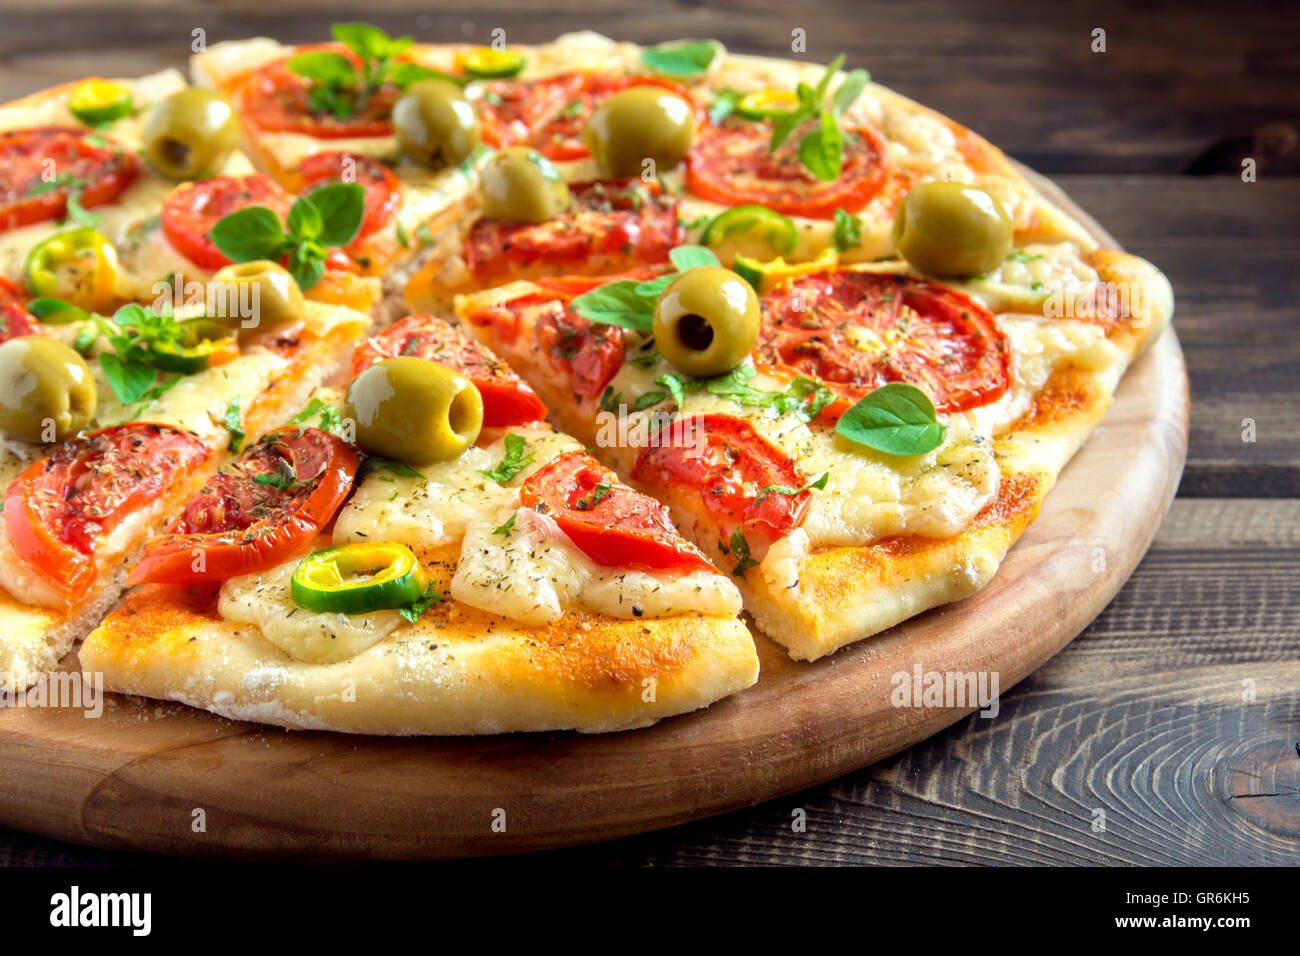 Homemade vegetable pizza with tomatoes, green olives, pepper, basil, oregano and cheese on wooden table with copy - Stock Image